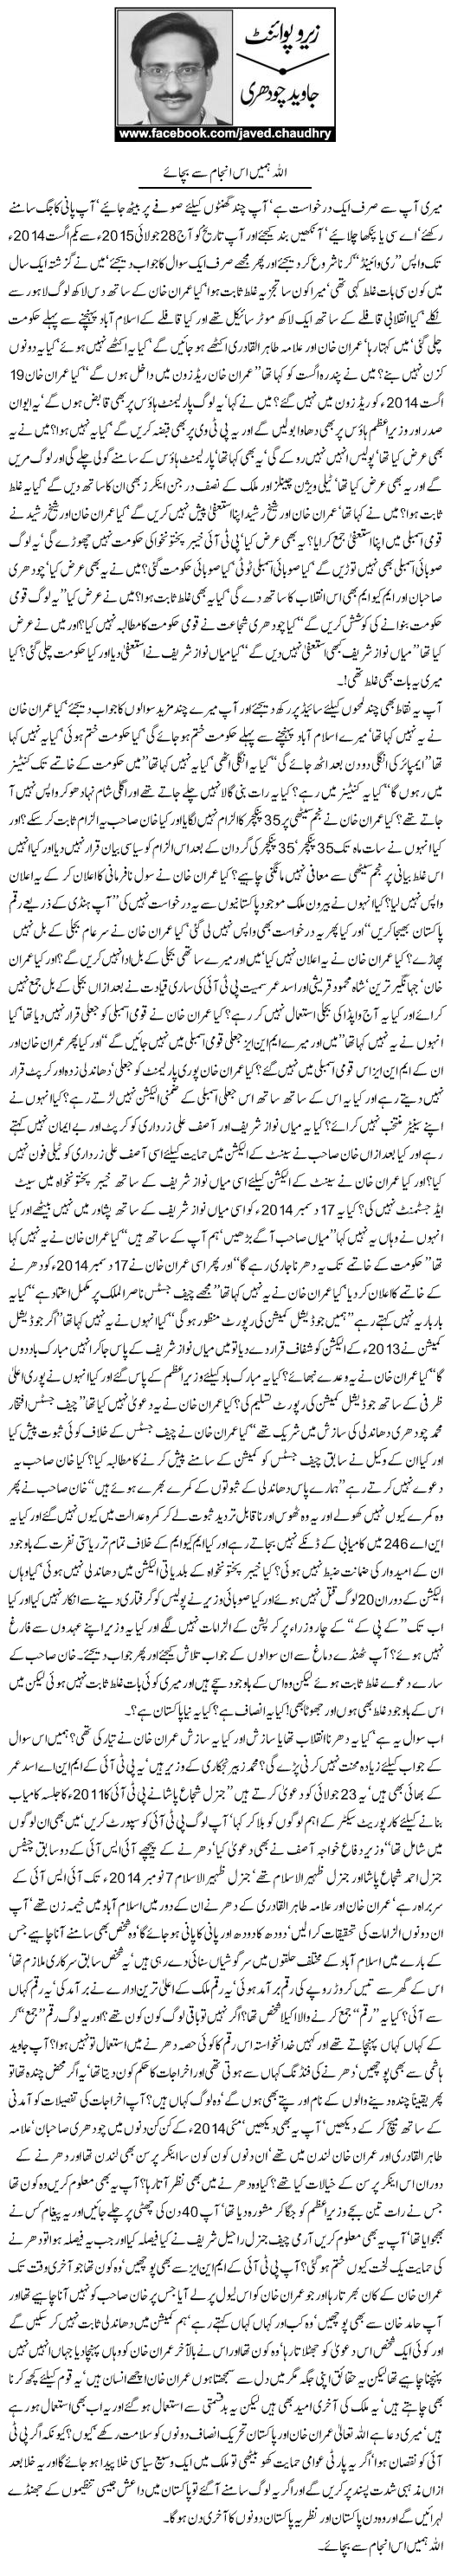 Javed Chaudhry Column | Allah Hamay Iss Anjam Se Bachaie | Zero Point